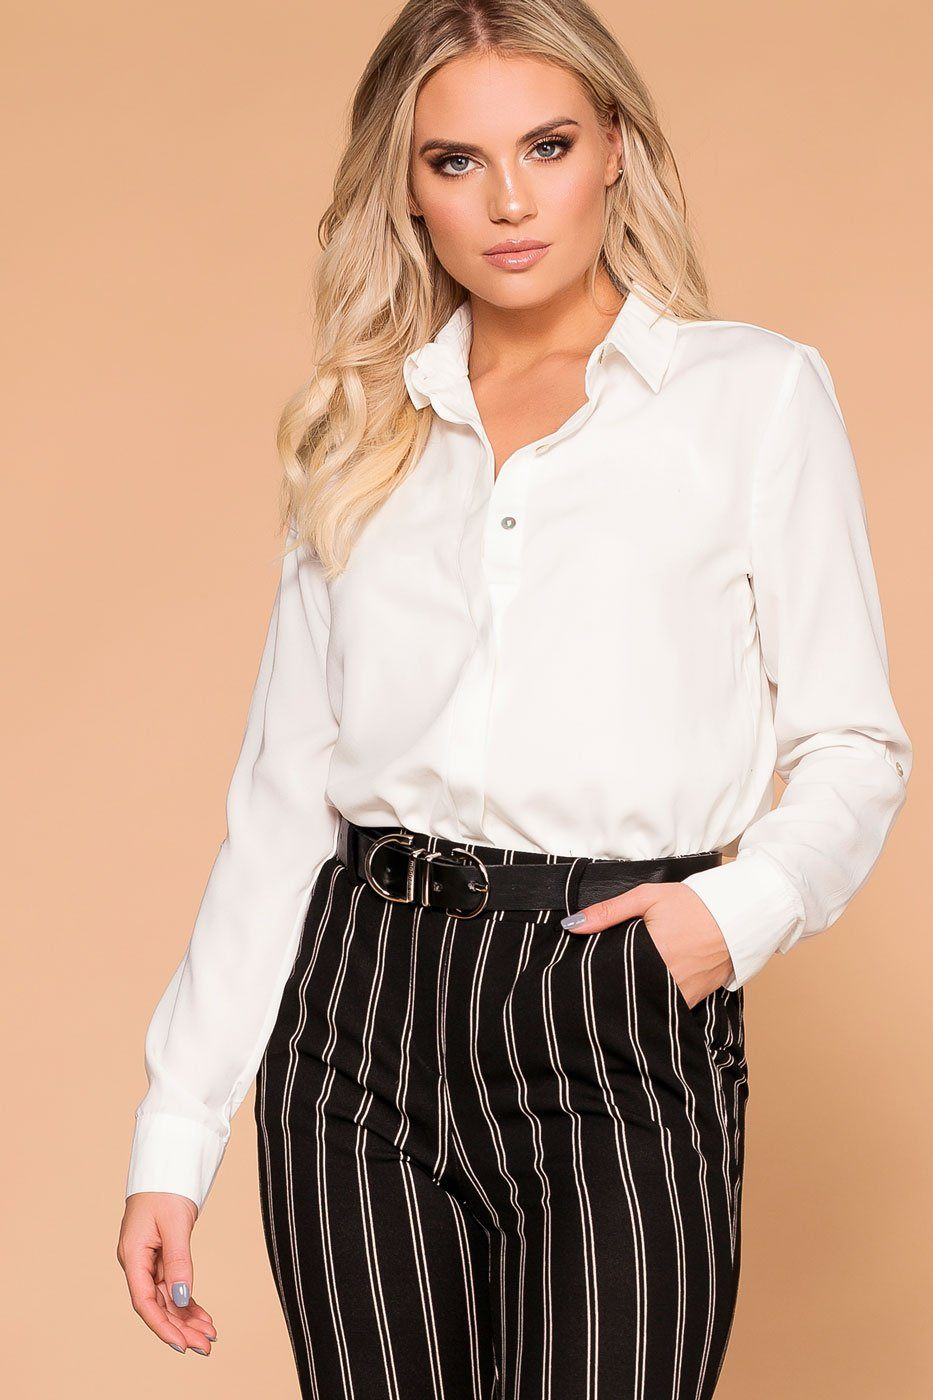 89737fb48761 Busy Bee Ivory Button Down Top